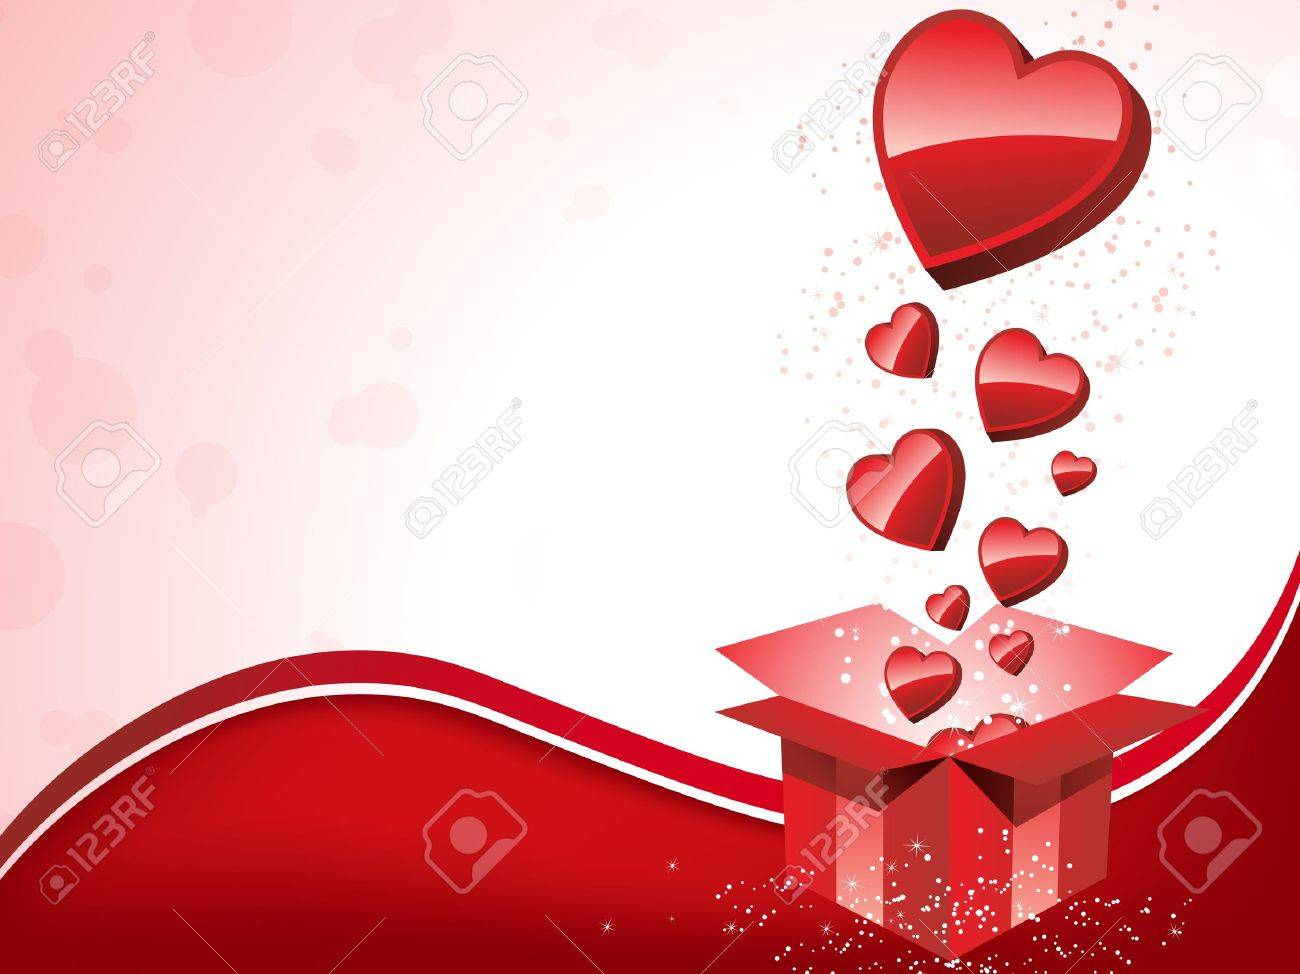 Vector - Happy Valentine's Day  Gift with Hearts Stock Vector - 8599253